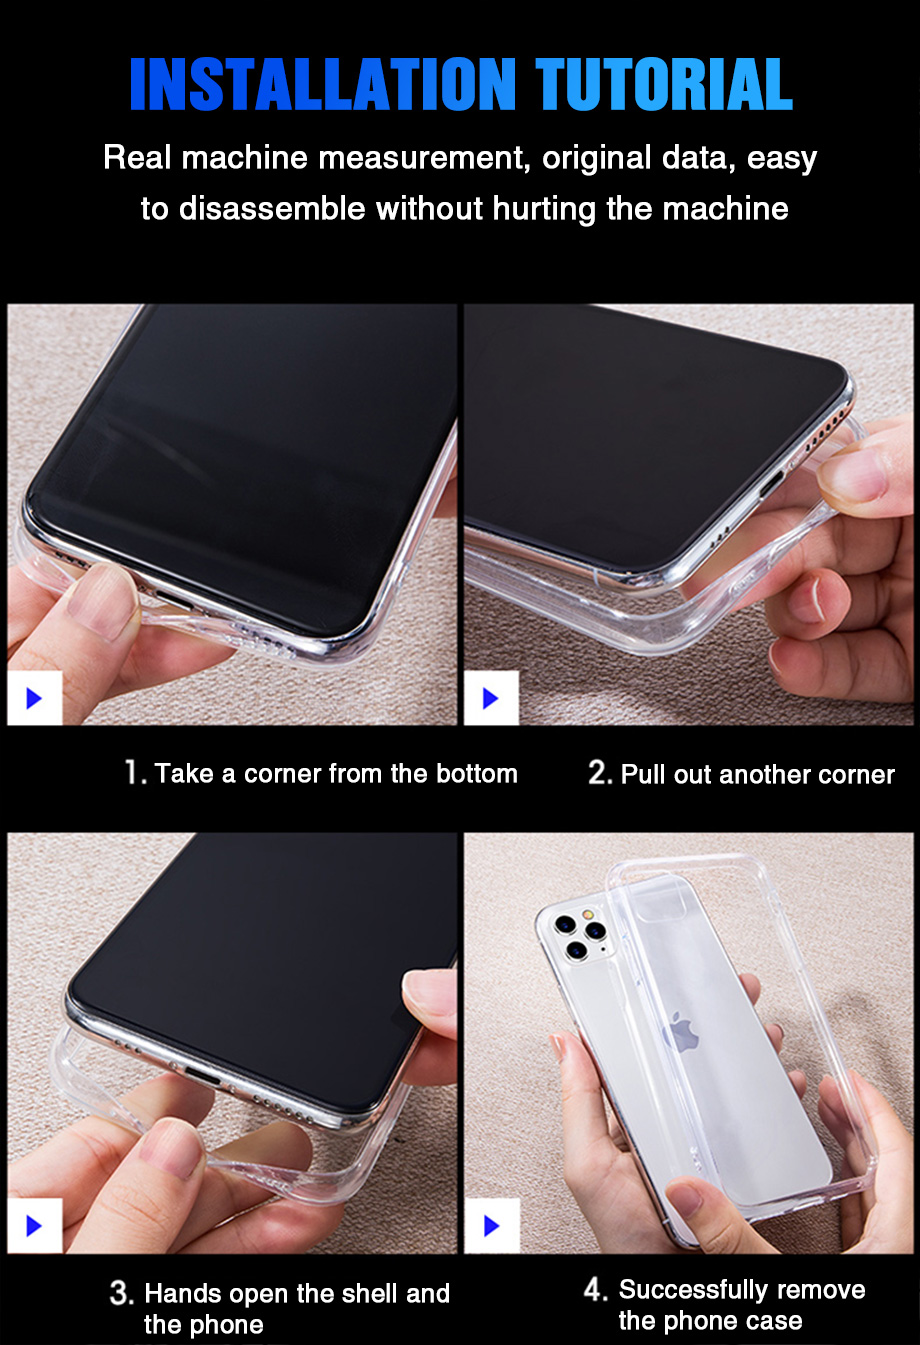 Hb331f12c7f9d469da1613099bb49d5c3w - Ultra Thin Clear Silicone Phone Case For iPhone 11 Pro Max Case iphone XR XS Max X 7 8 6 6S Plus Soft TPU Transparent Back Cover